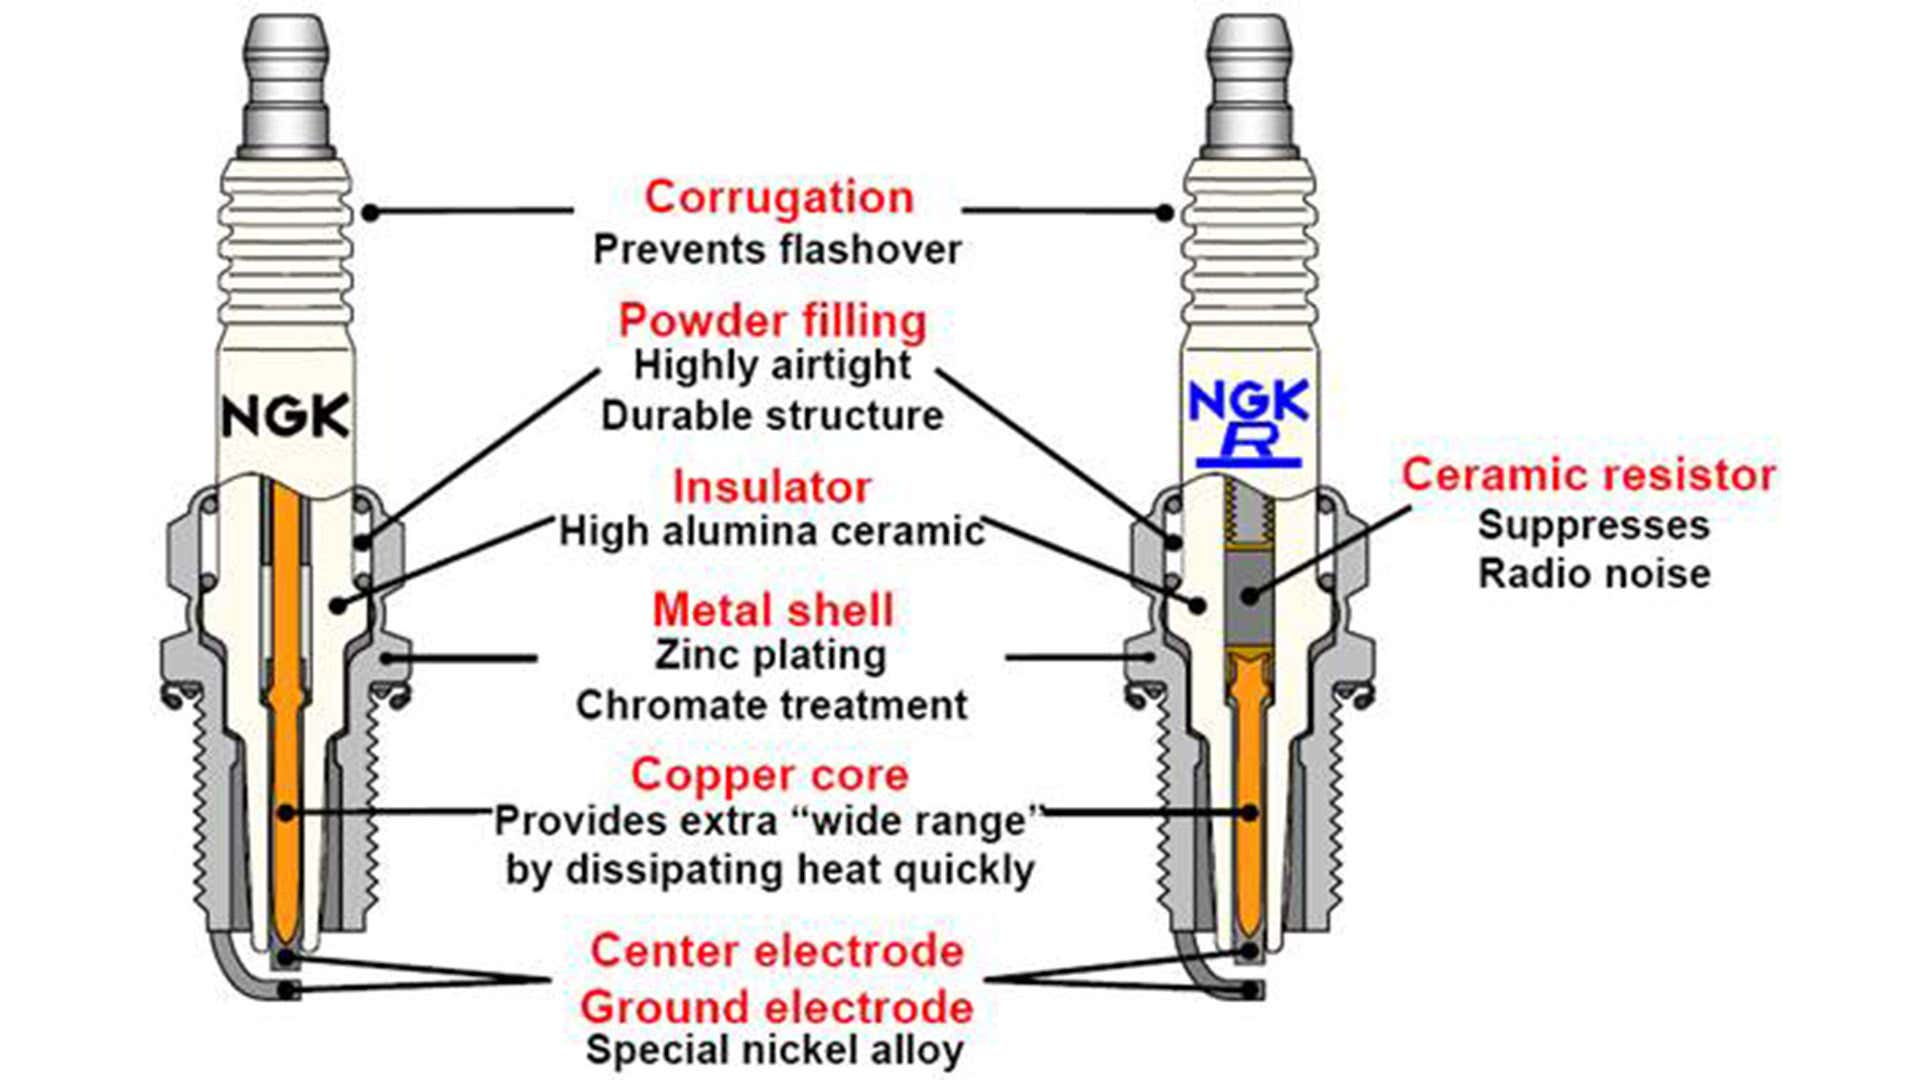 Spark plugs often have copper cores for heat dissipation.